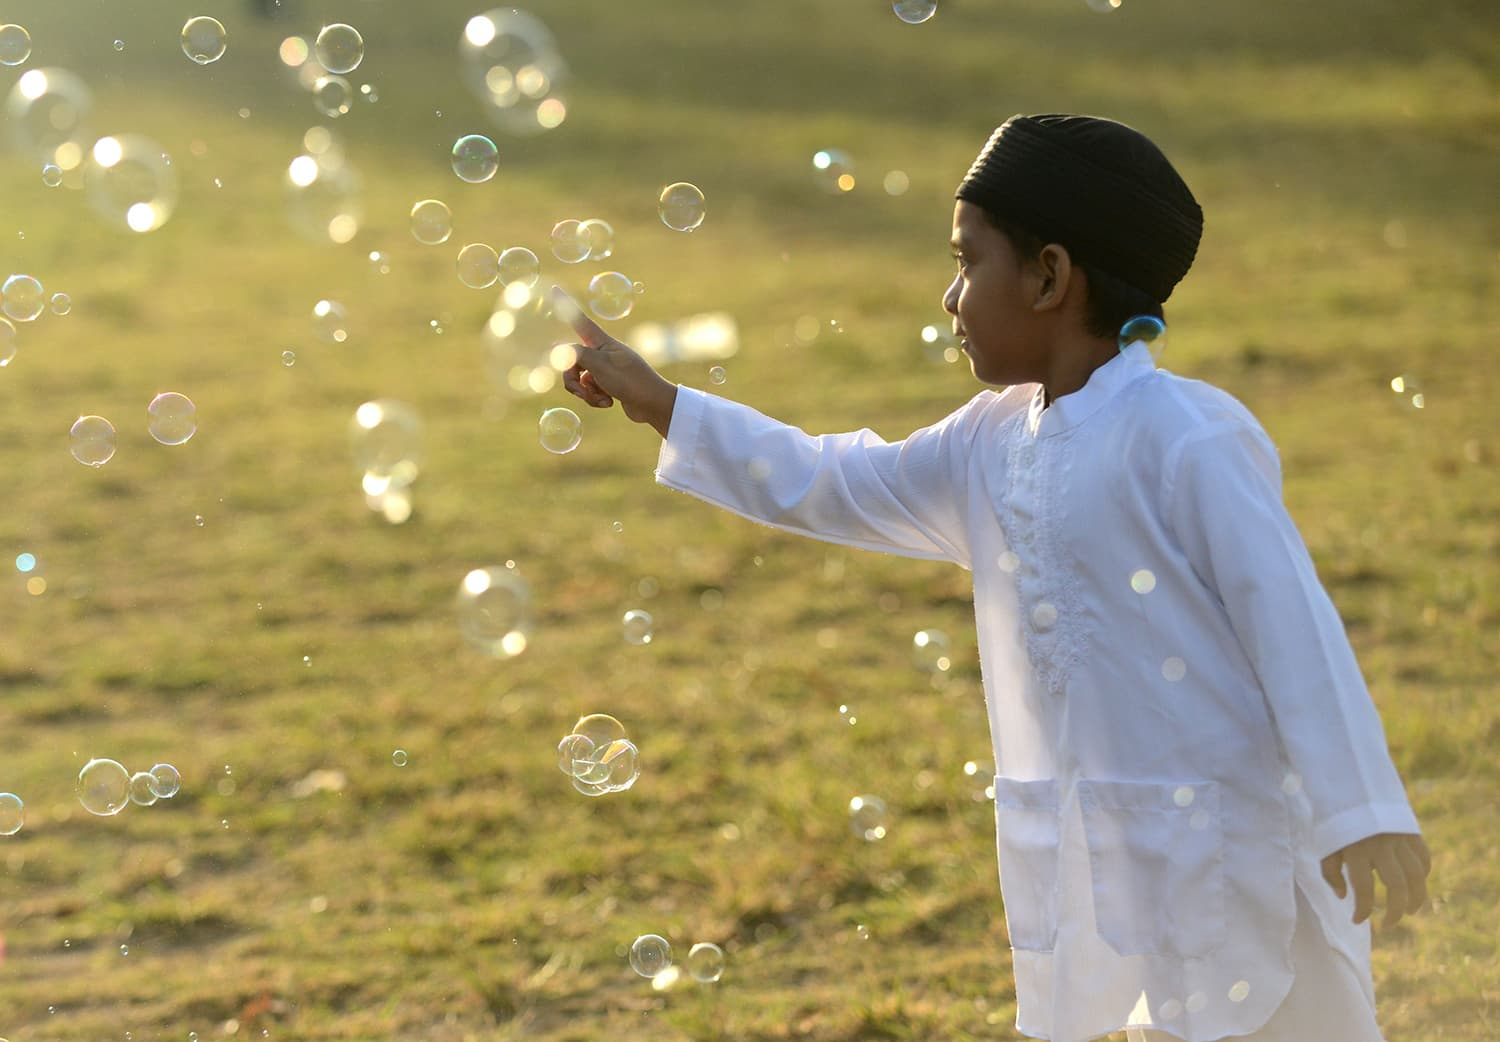 A young boy plays with bubbles as Muslims take part in a special morning prayer celebrating Eidul Fitr festival at Bali's Bajra Sandhi monument and park in Denpasar. — AFP